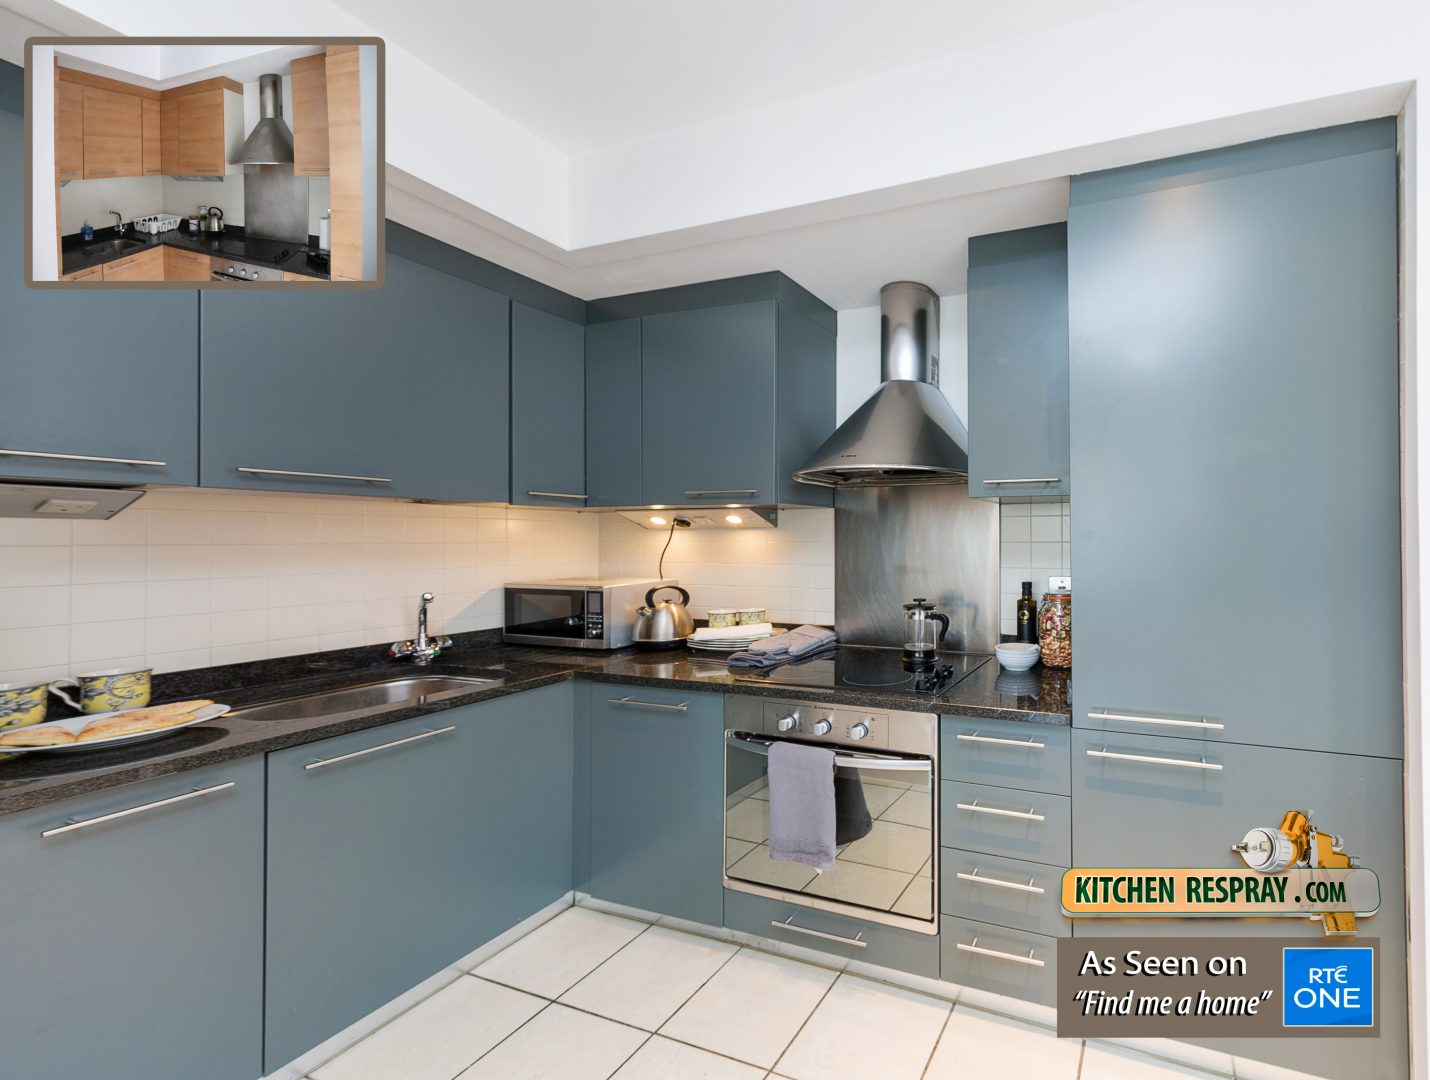 kitchen resurfacing small decor respray dublin ireland com is the answer to all of your needs we have been in business respraying kitchens for over 15 years